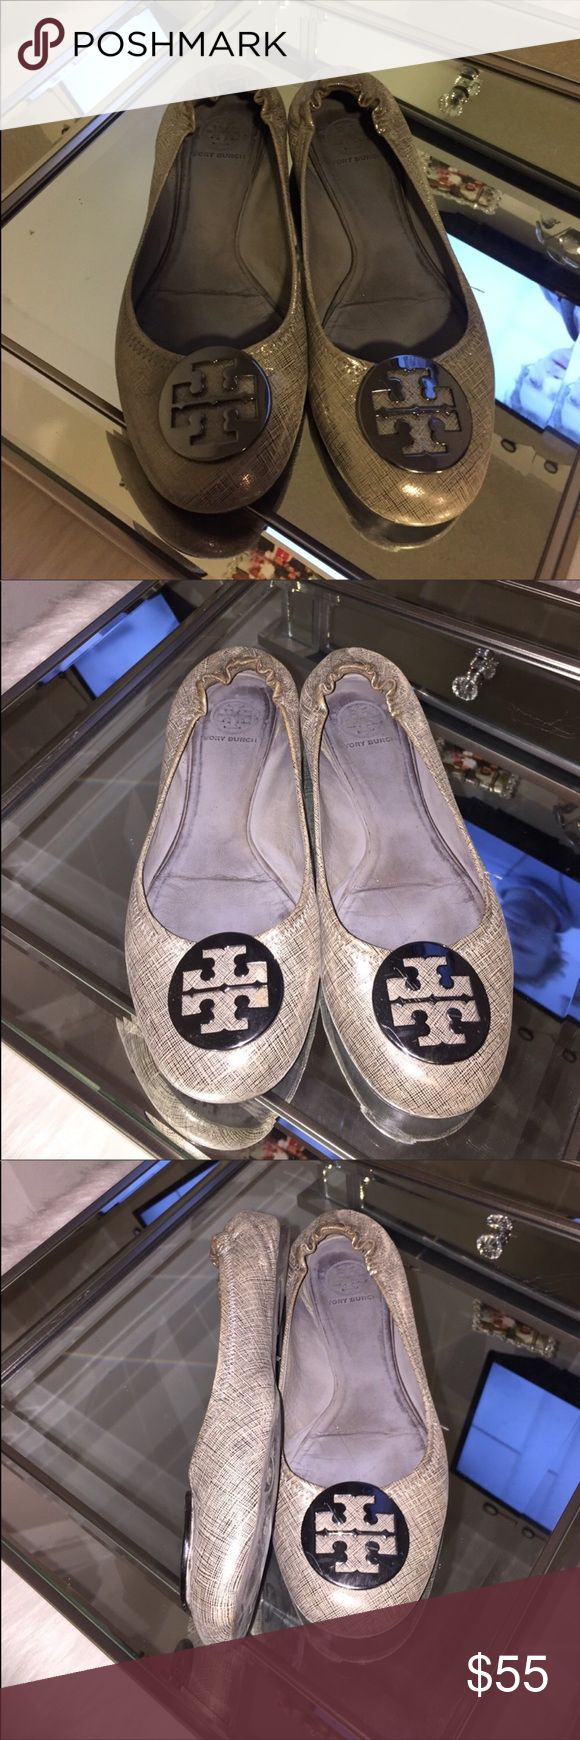 Tory Burch size 11 Gray Flats Beautiful pair of size 11 Tori Burch gray flats. Used Tory Burch Shoes Flats & Loafers